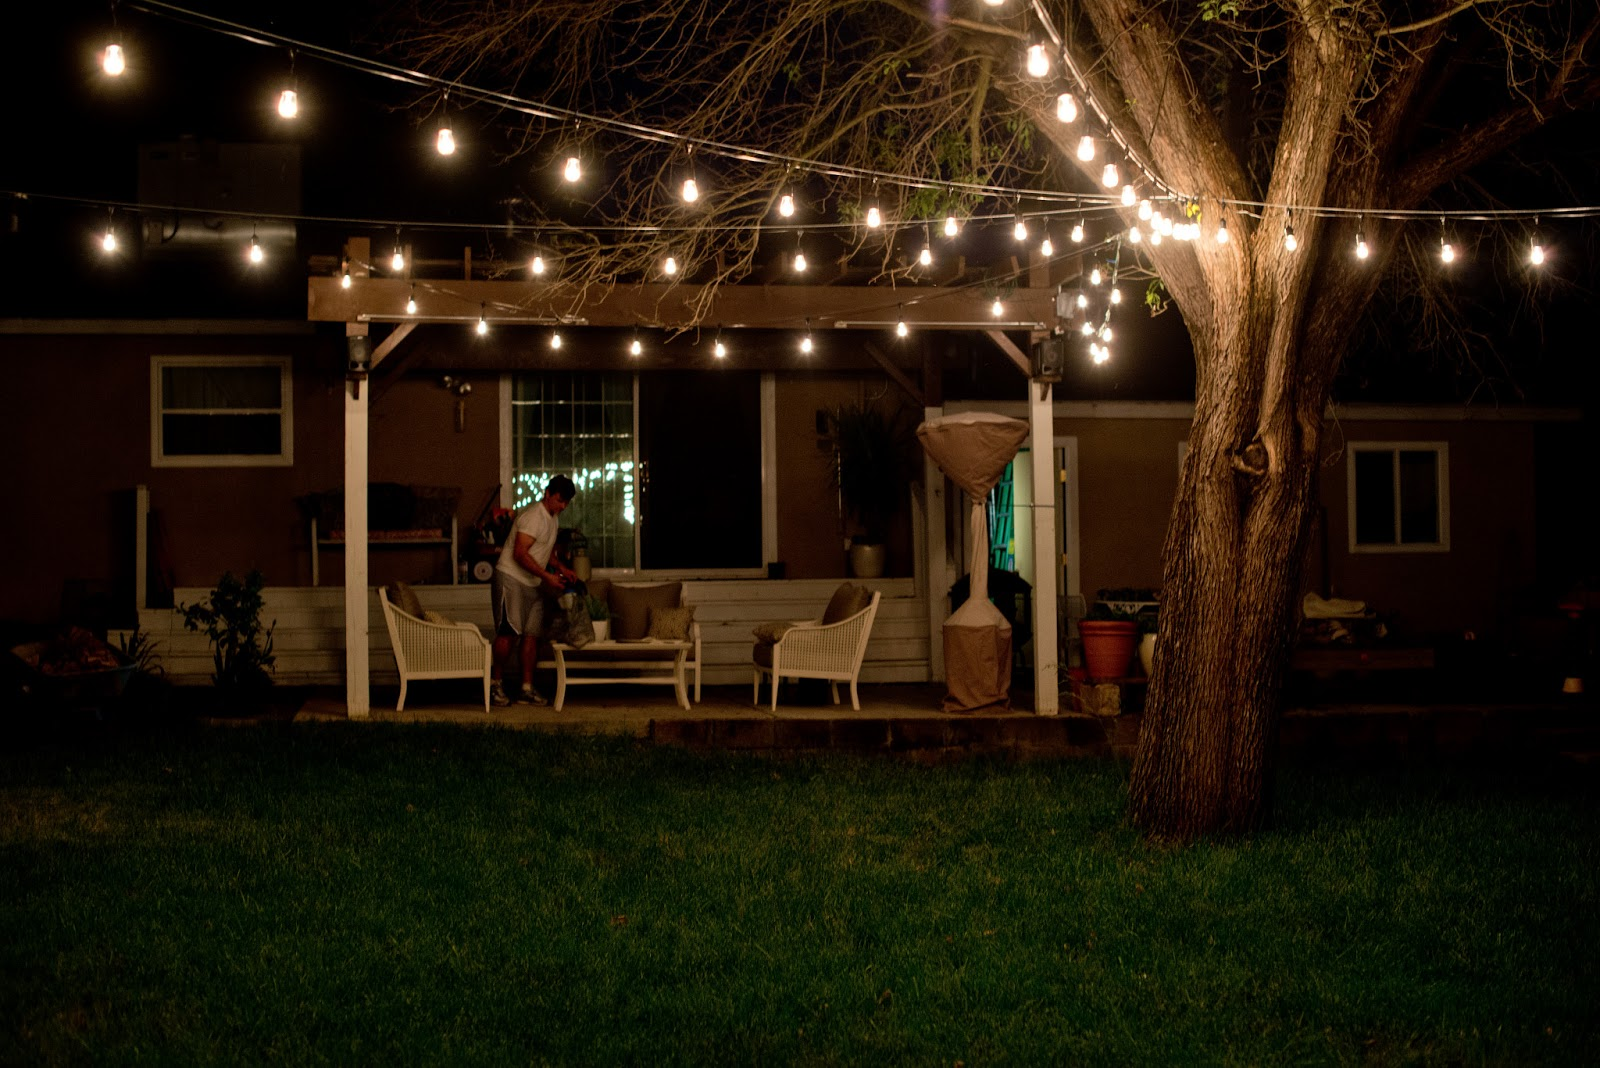 Outdoor String Lights Kijiji : The Benefits of Outdoor Patio Lights Enlightened Lighting